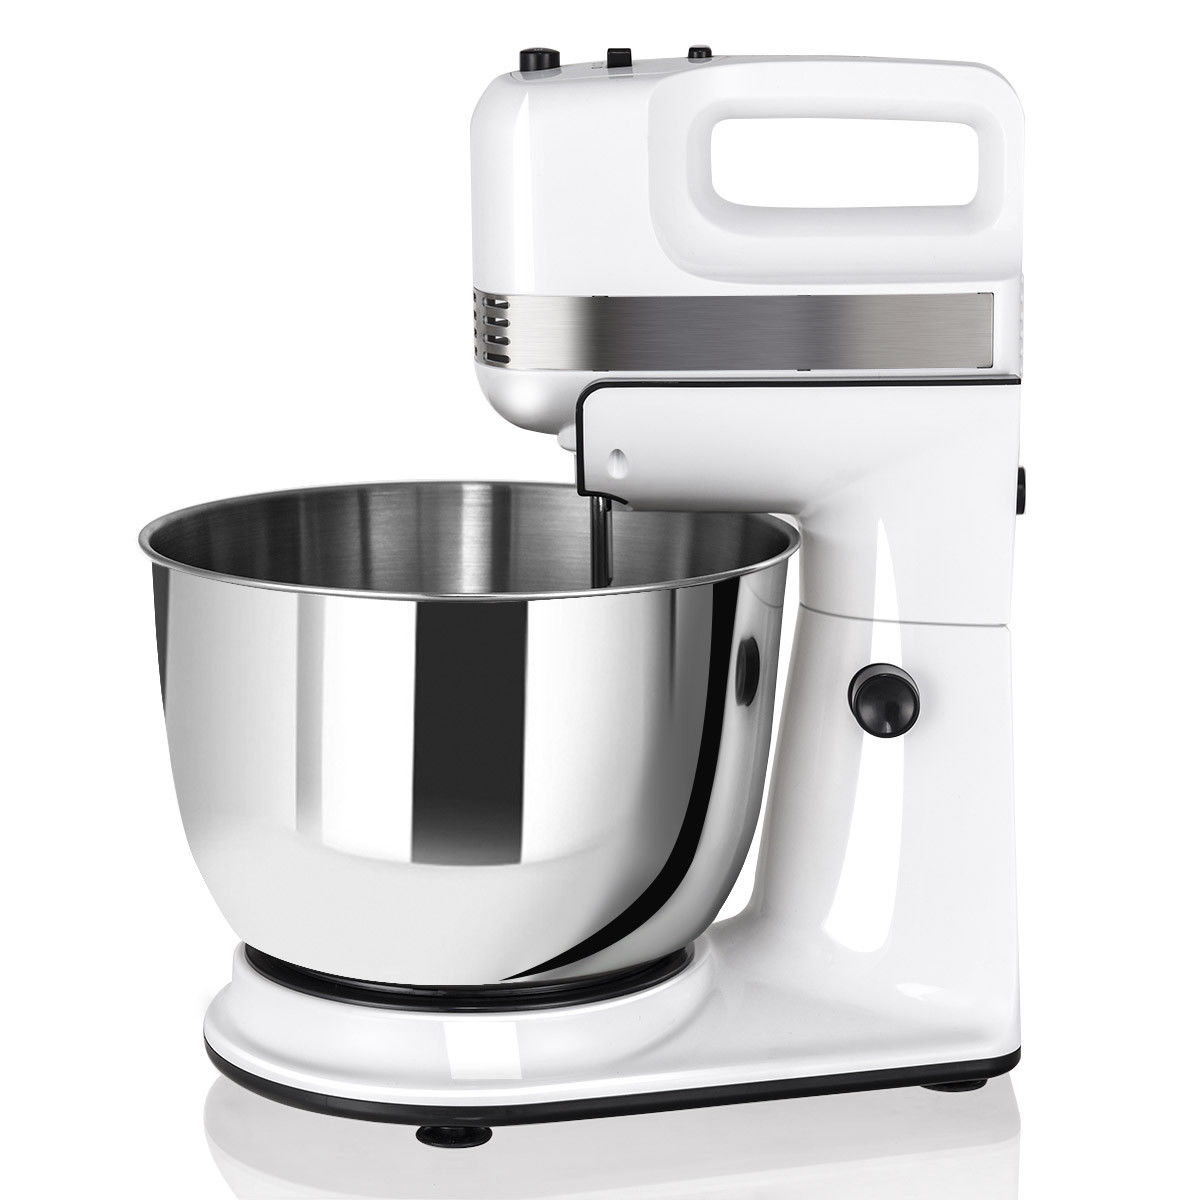 Costway 250W 5-Speed Stand Mixer w/ with Dough Hooks Beaters and Stainless Steel Bowl